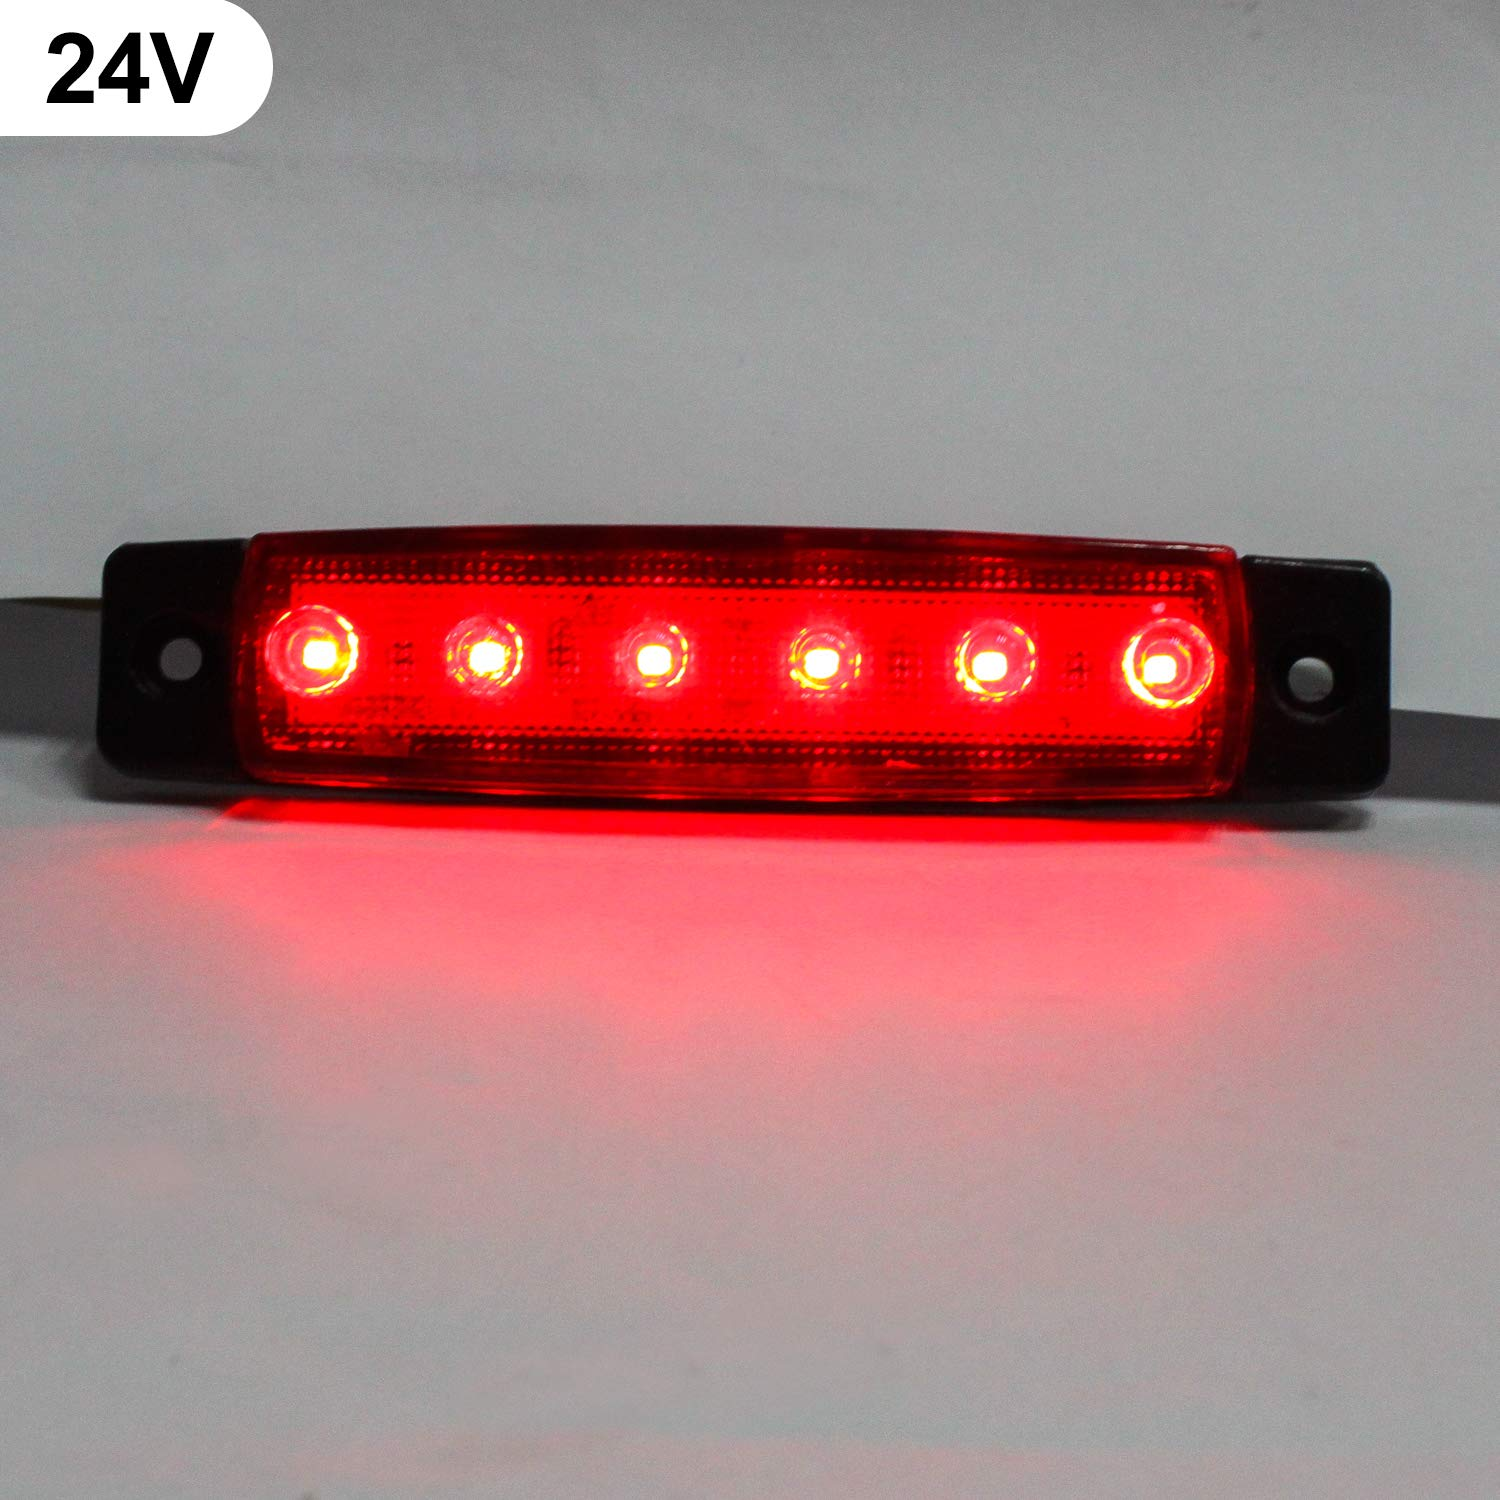 3.8 Trailer Side Marker,10Pack 24V LED Side Marker Lights Lamp,Indicators Light for Back Up Rear Truck Pickup Van ATV Lorries